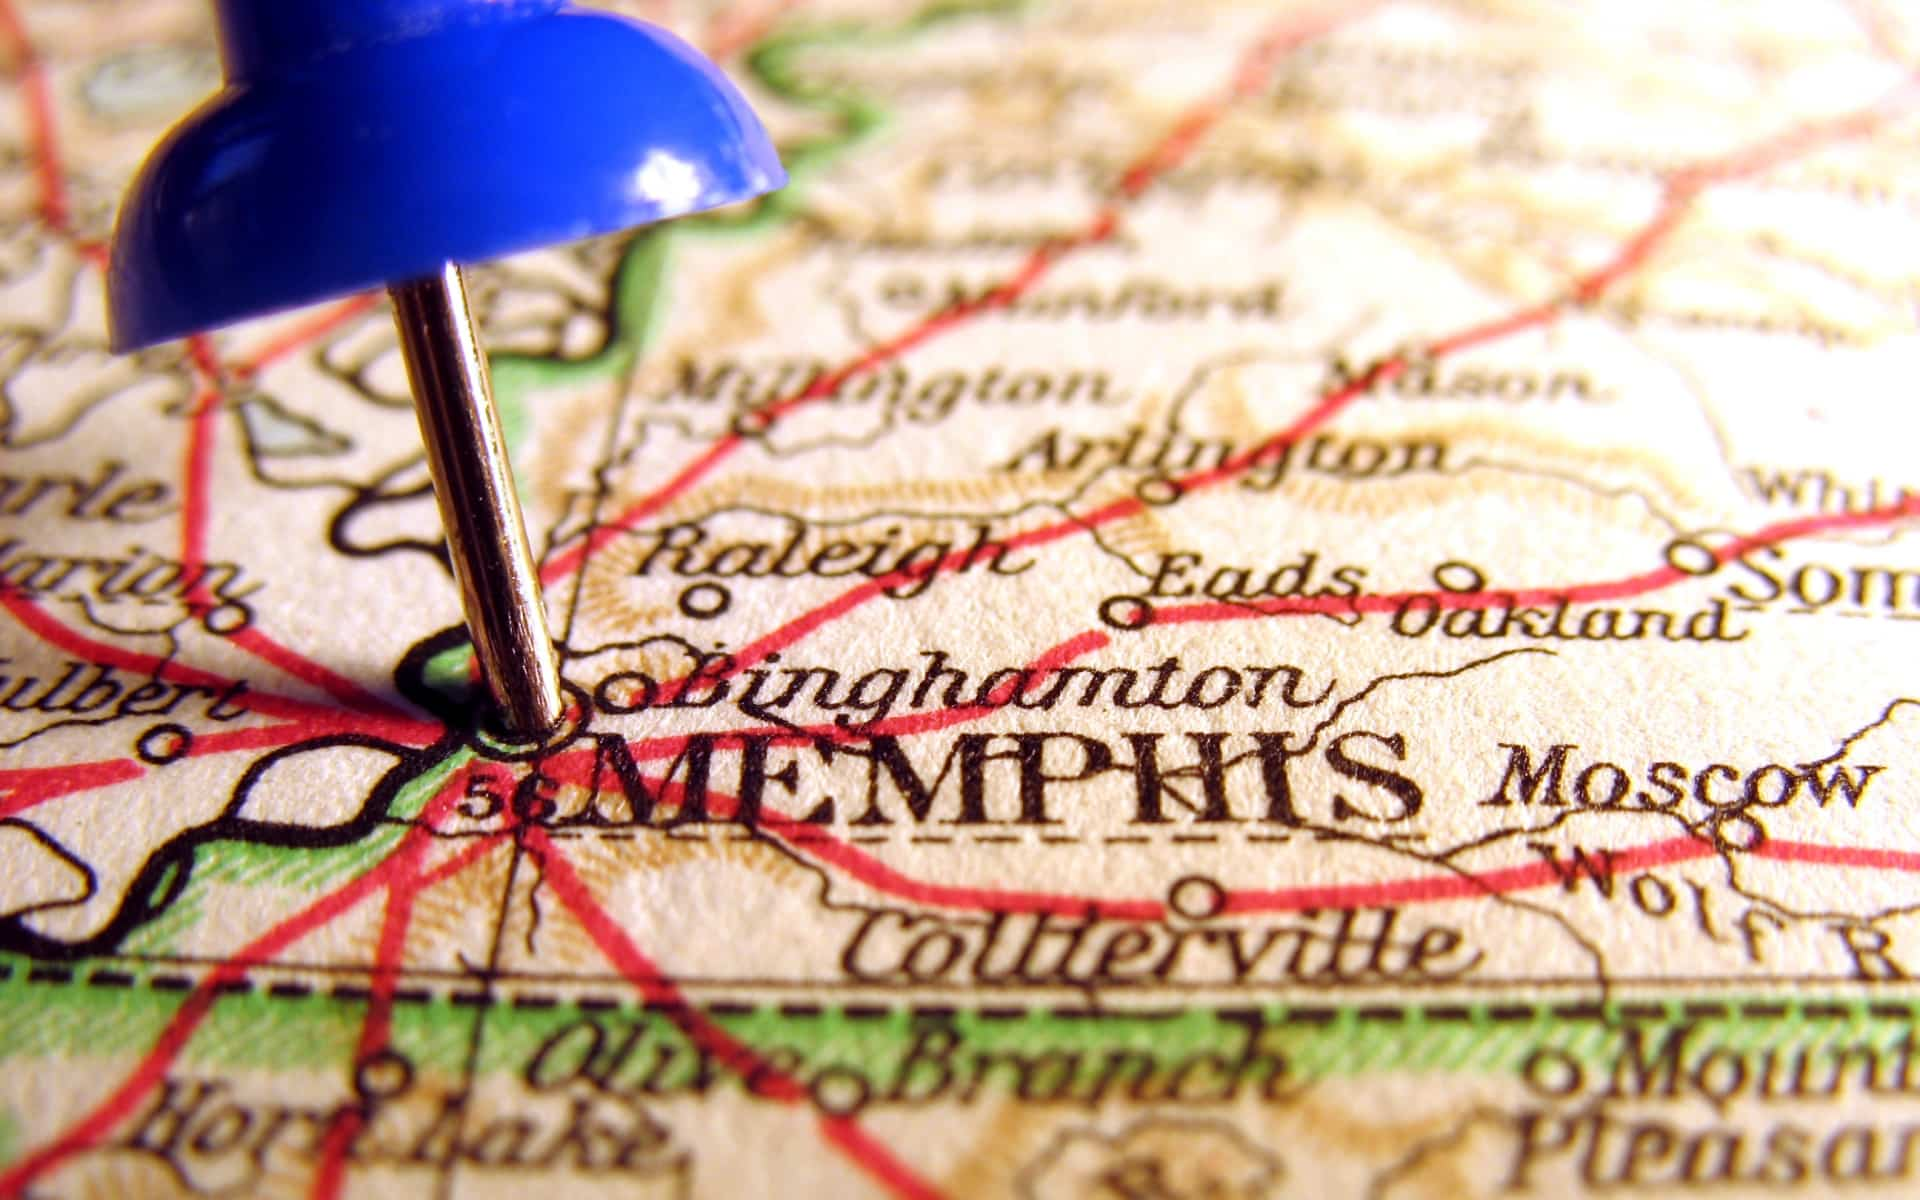 TripSavvy picks Memphis as the best overall destination for 2019!